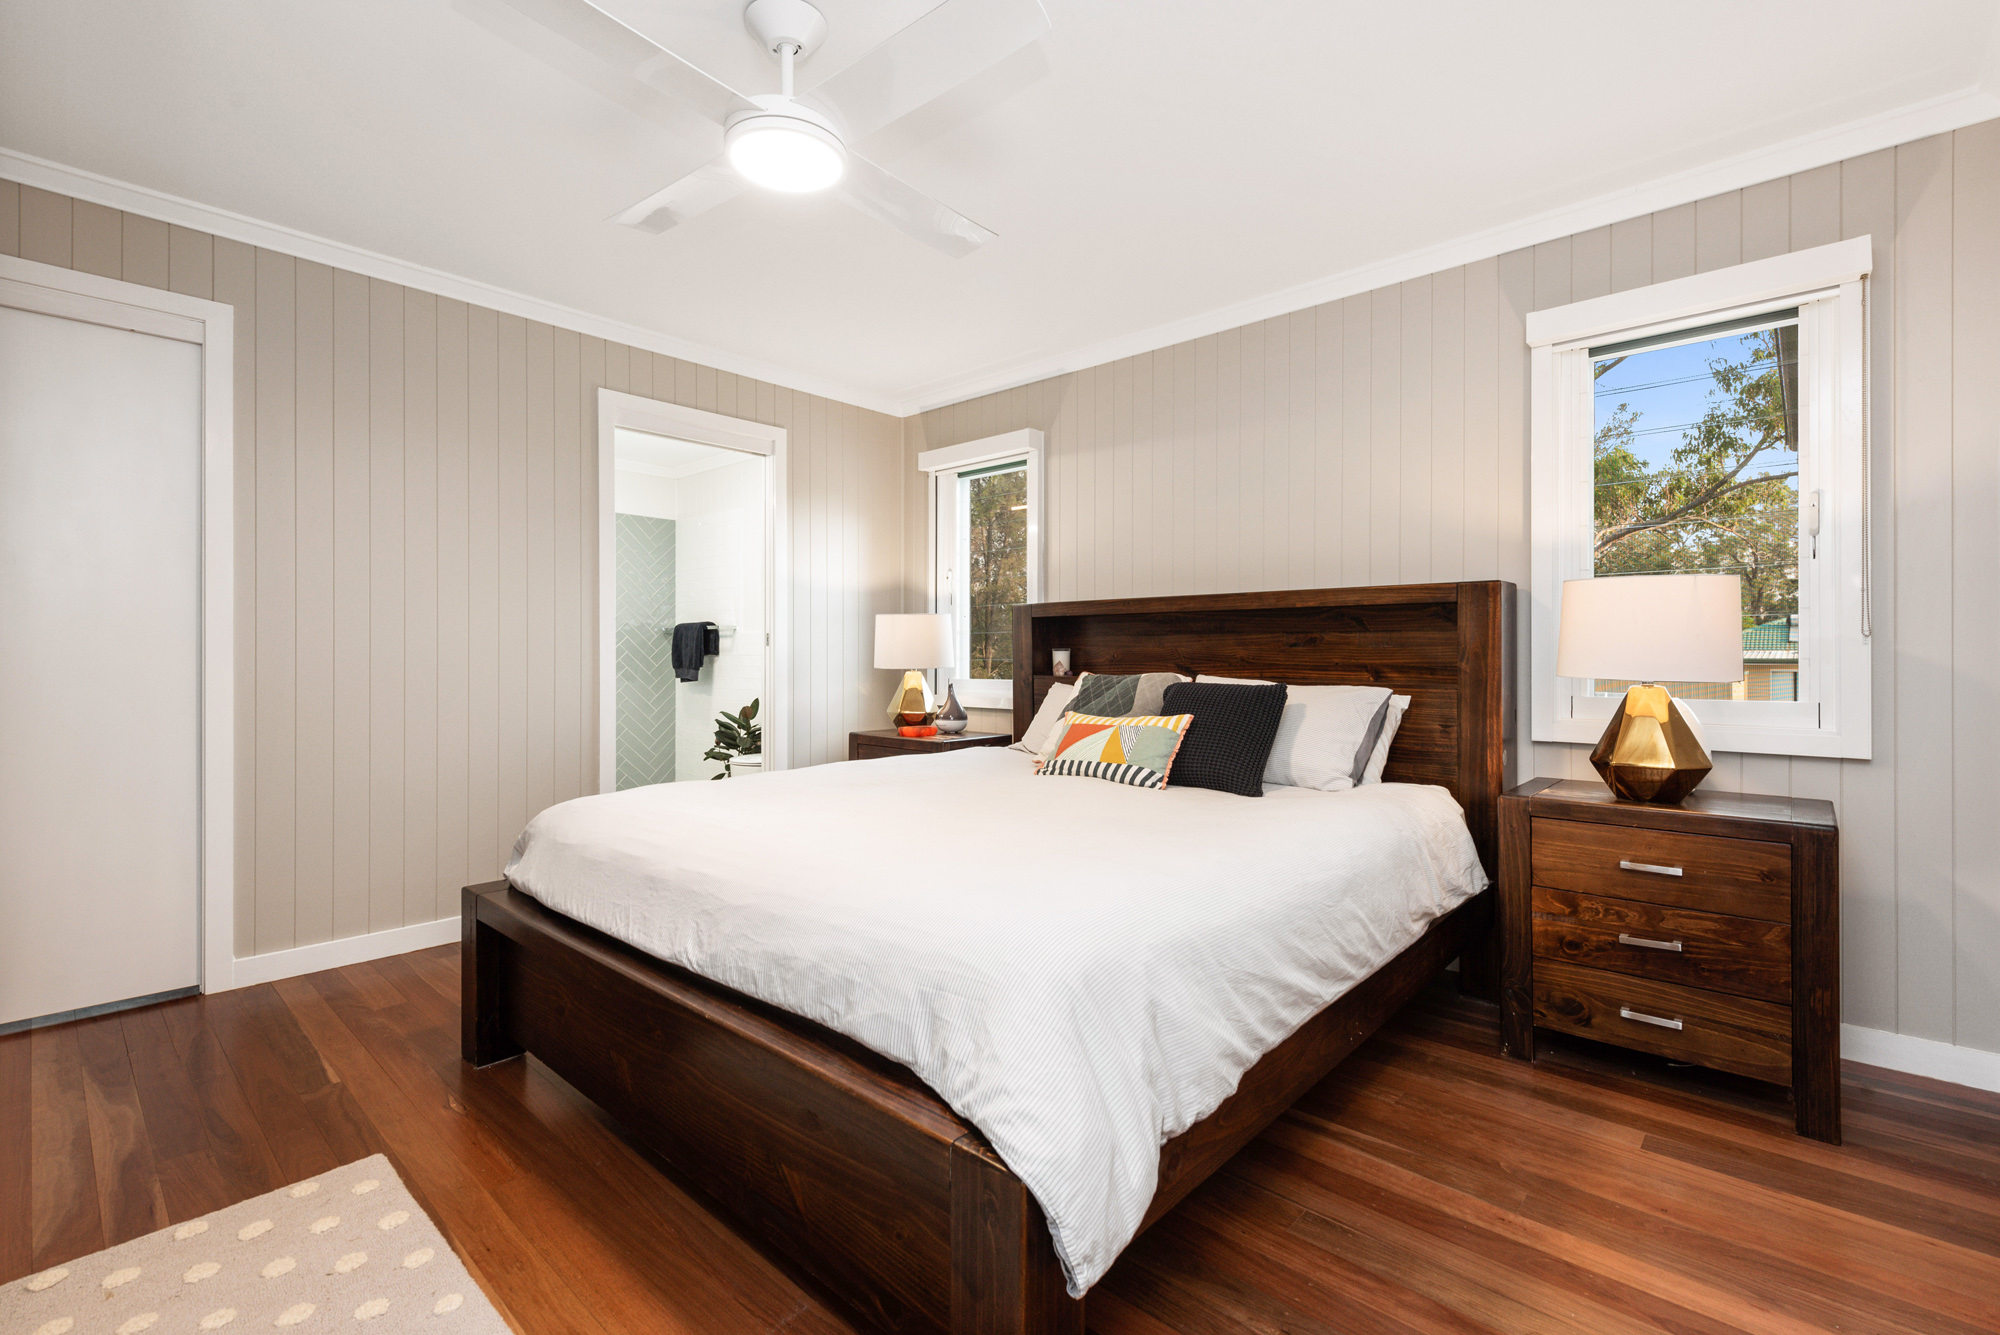 Master Suite for an extension in Oxley Brisbane